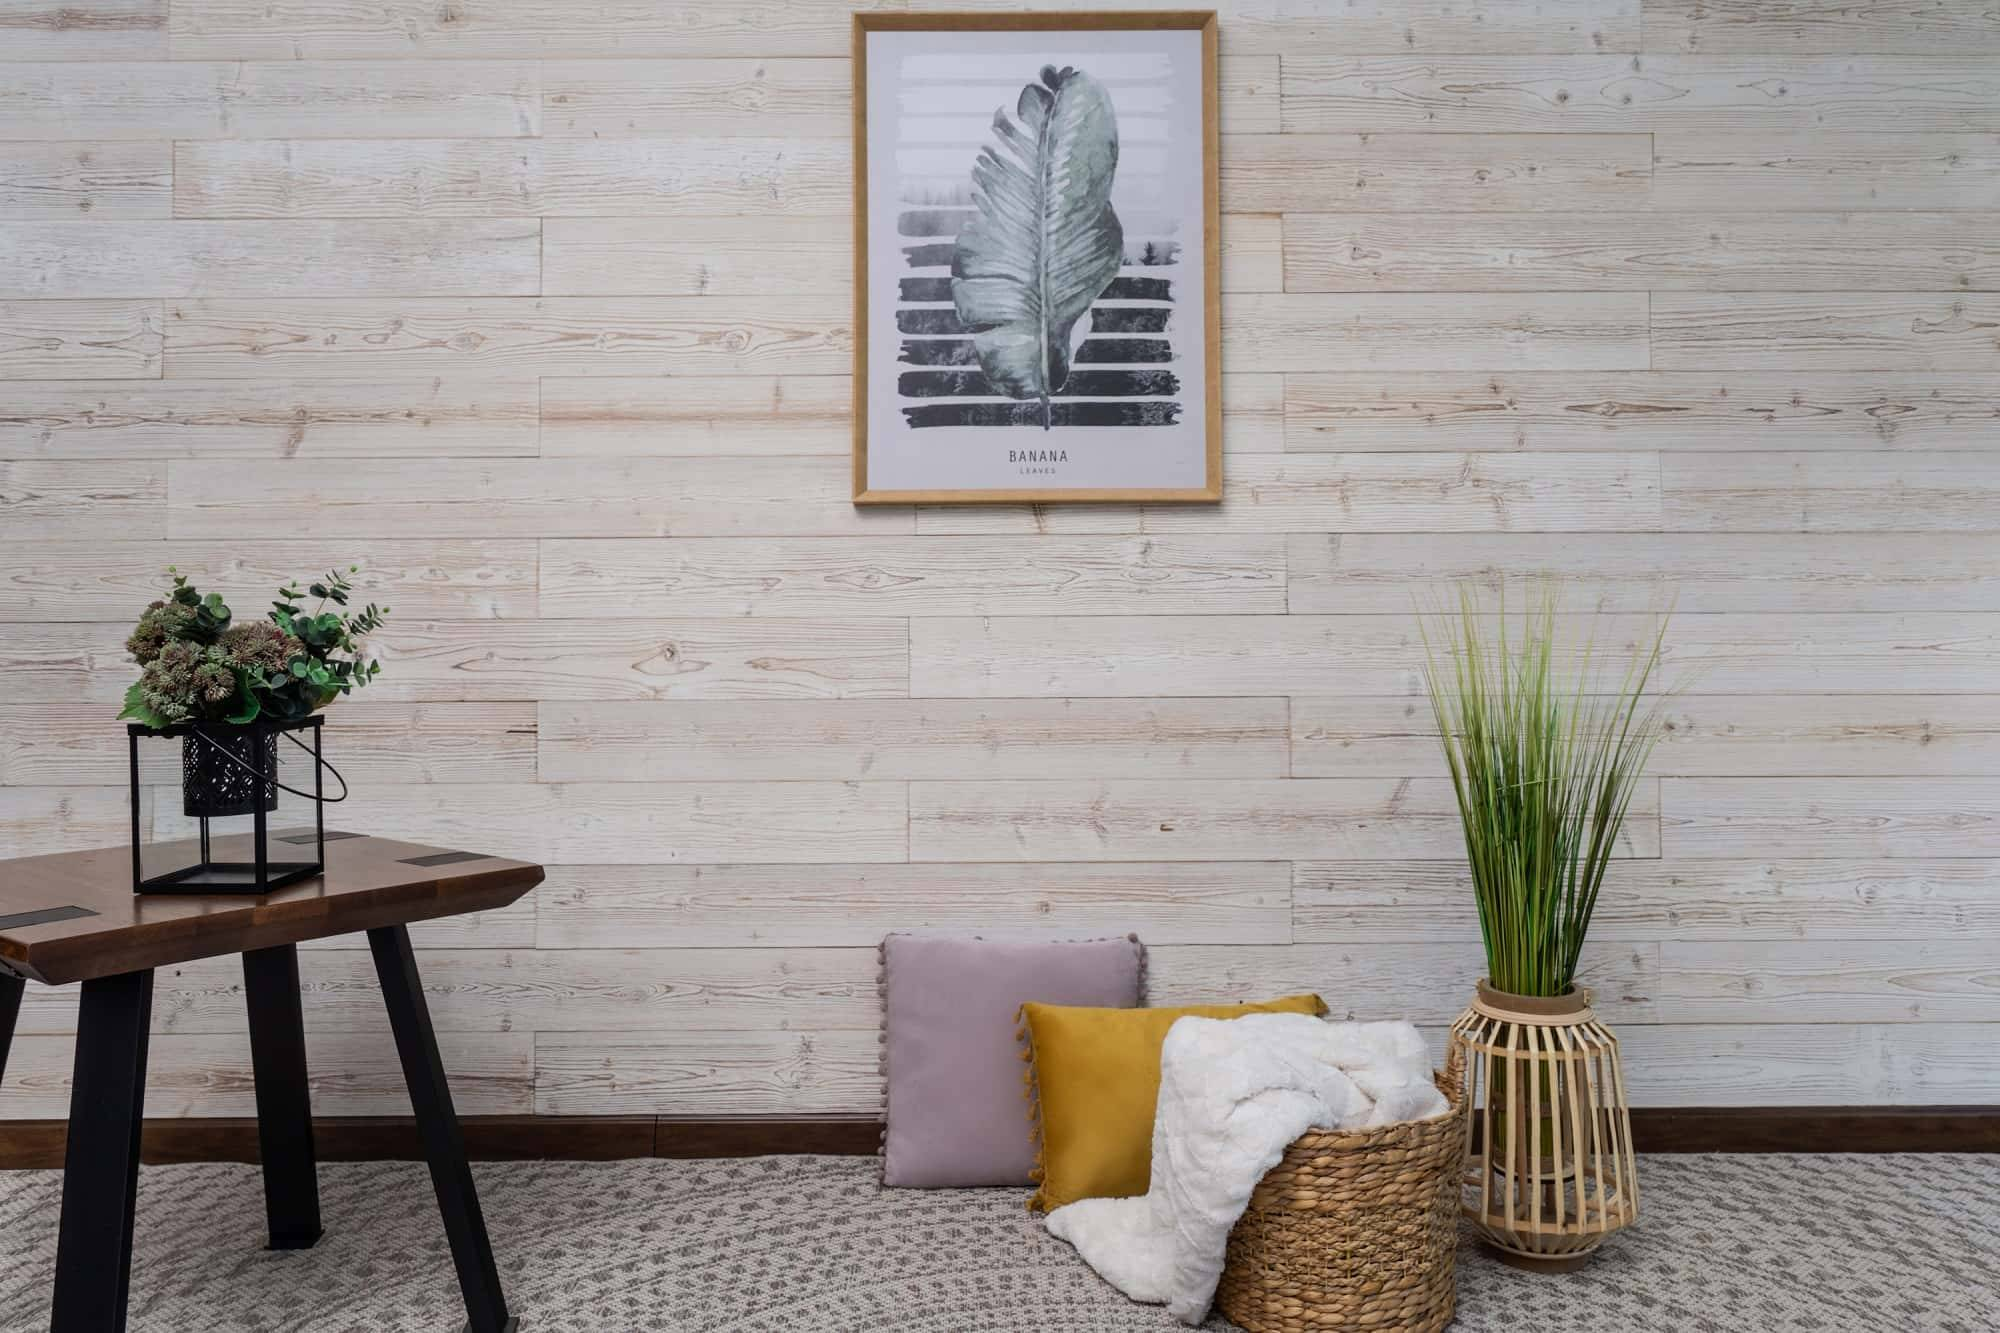 How to Decorate Your Home in an Eco-Friendly Way